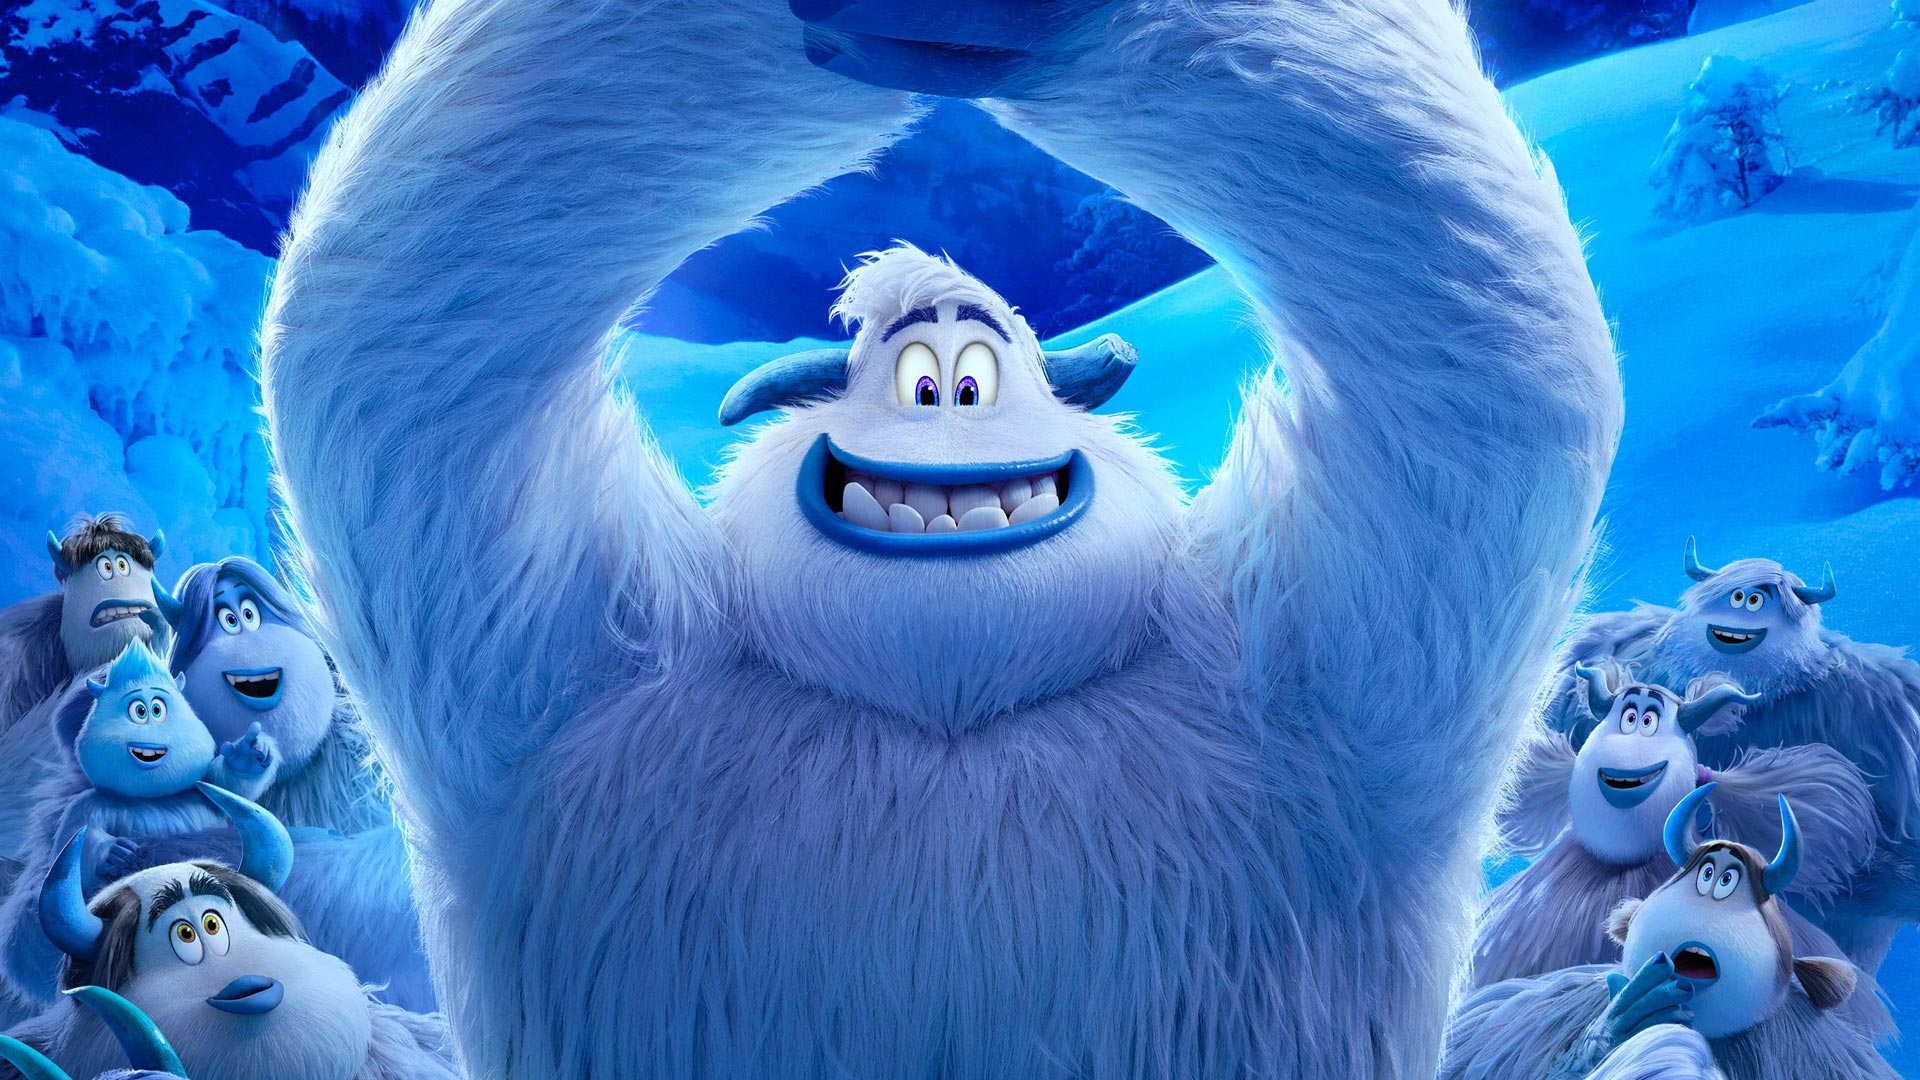 Lebron James Animated Wallpaper New Smallfoot Trailer Movies For Kids